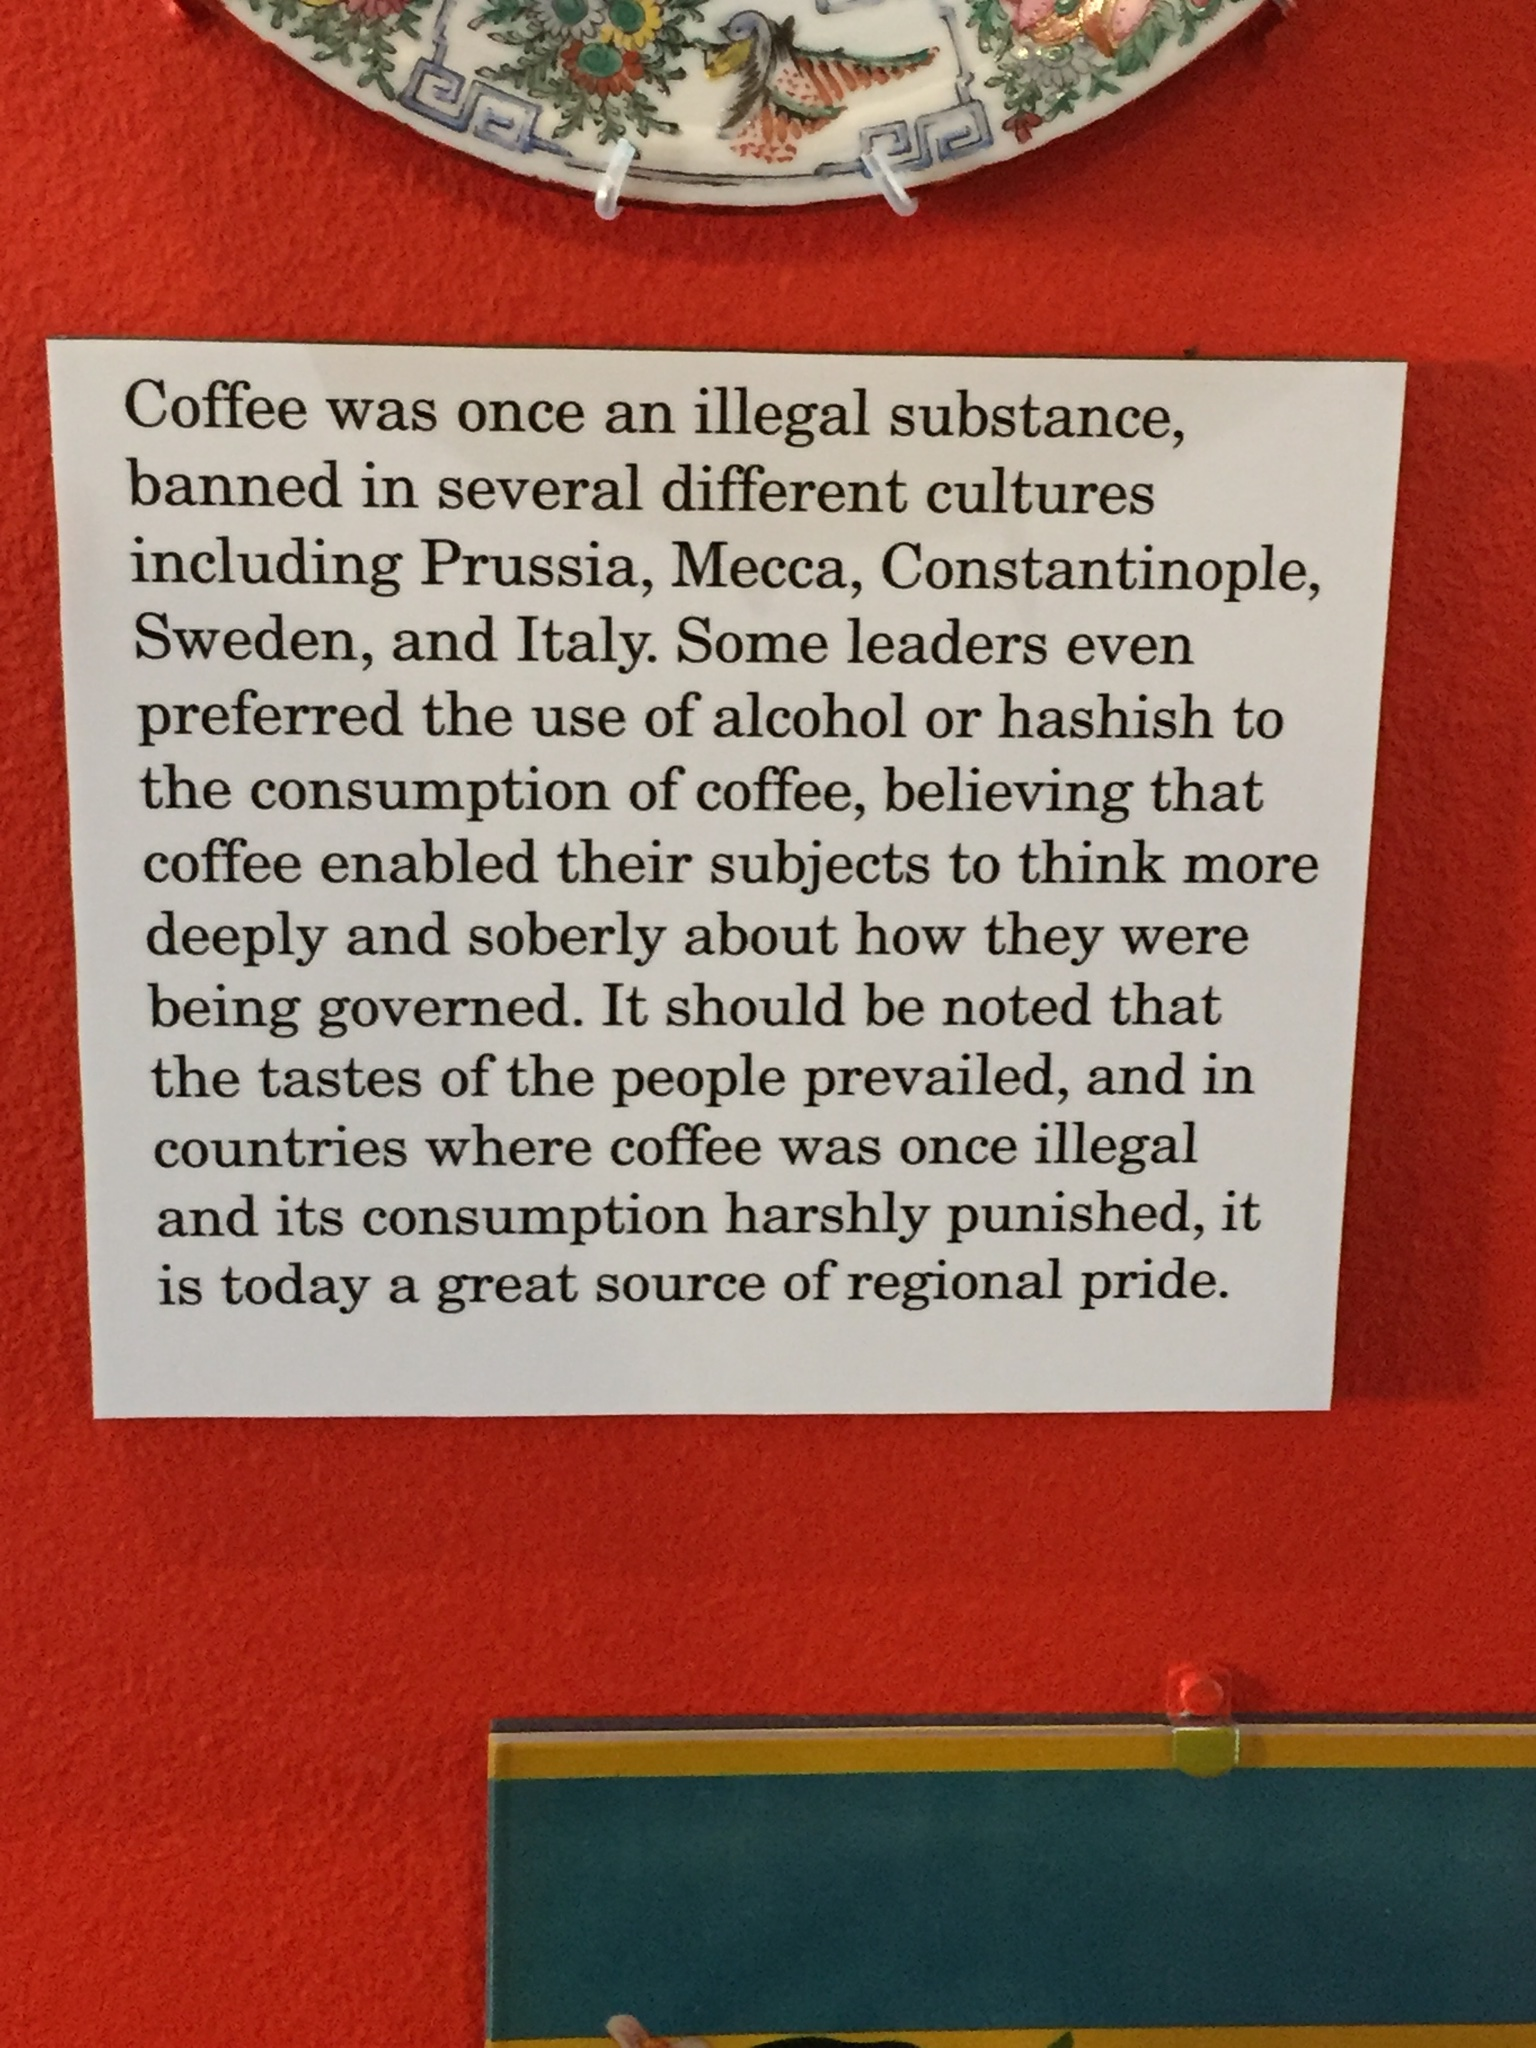 I love going to museums and learning little tidbits of information. Plus I enjoy coffee.